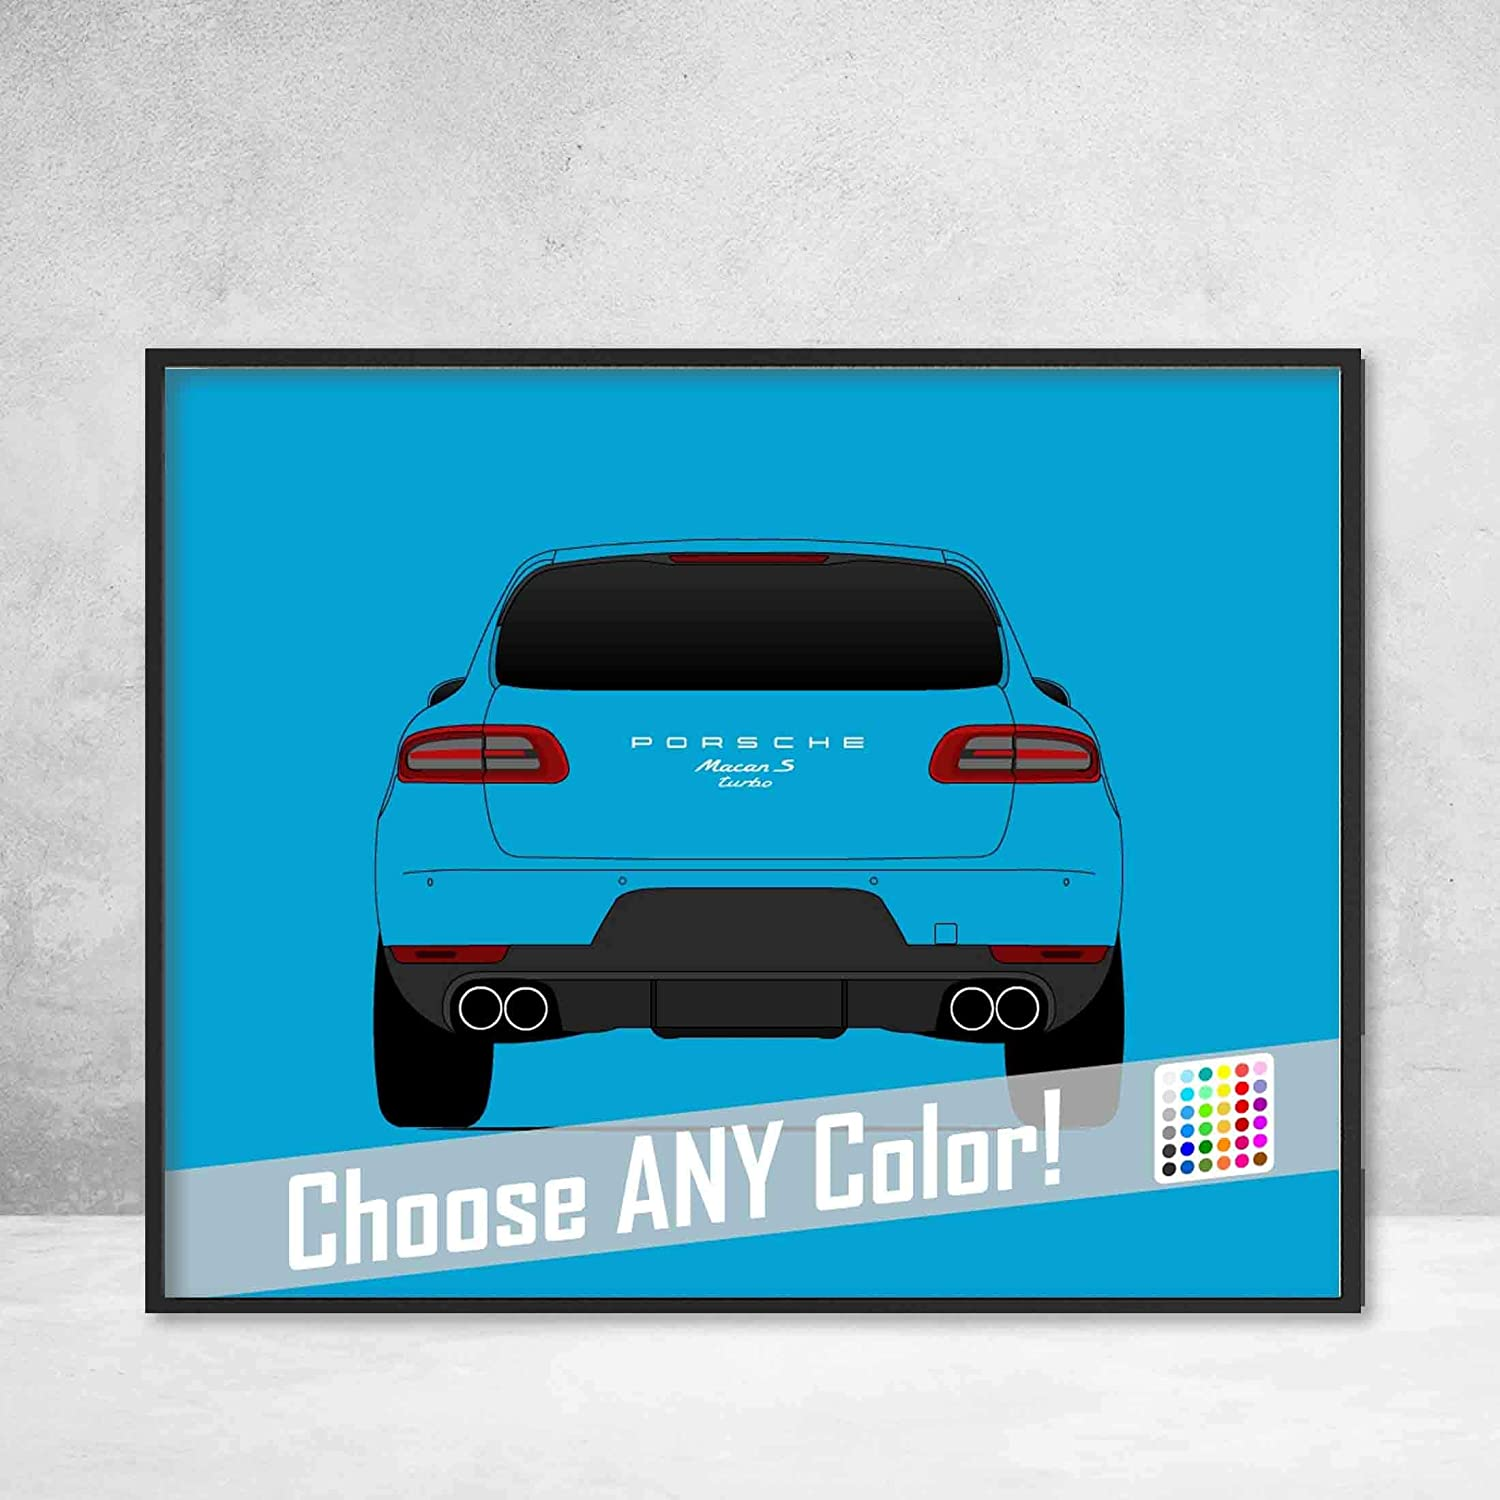 Amazon.com: Porsche Macan Turbo S Rear View Poster Print Wall Art Decor Handmade Type 95B GTS: Handmade